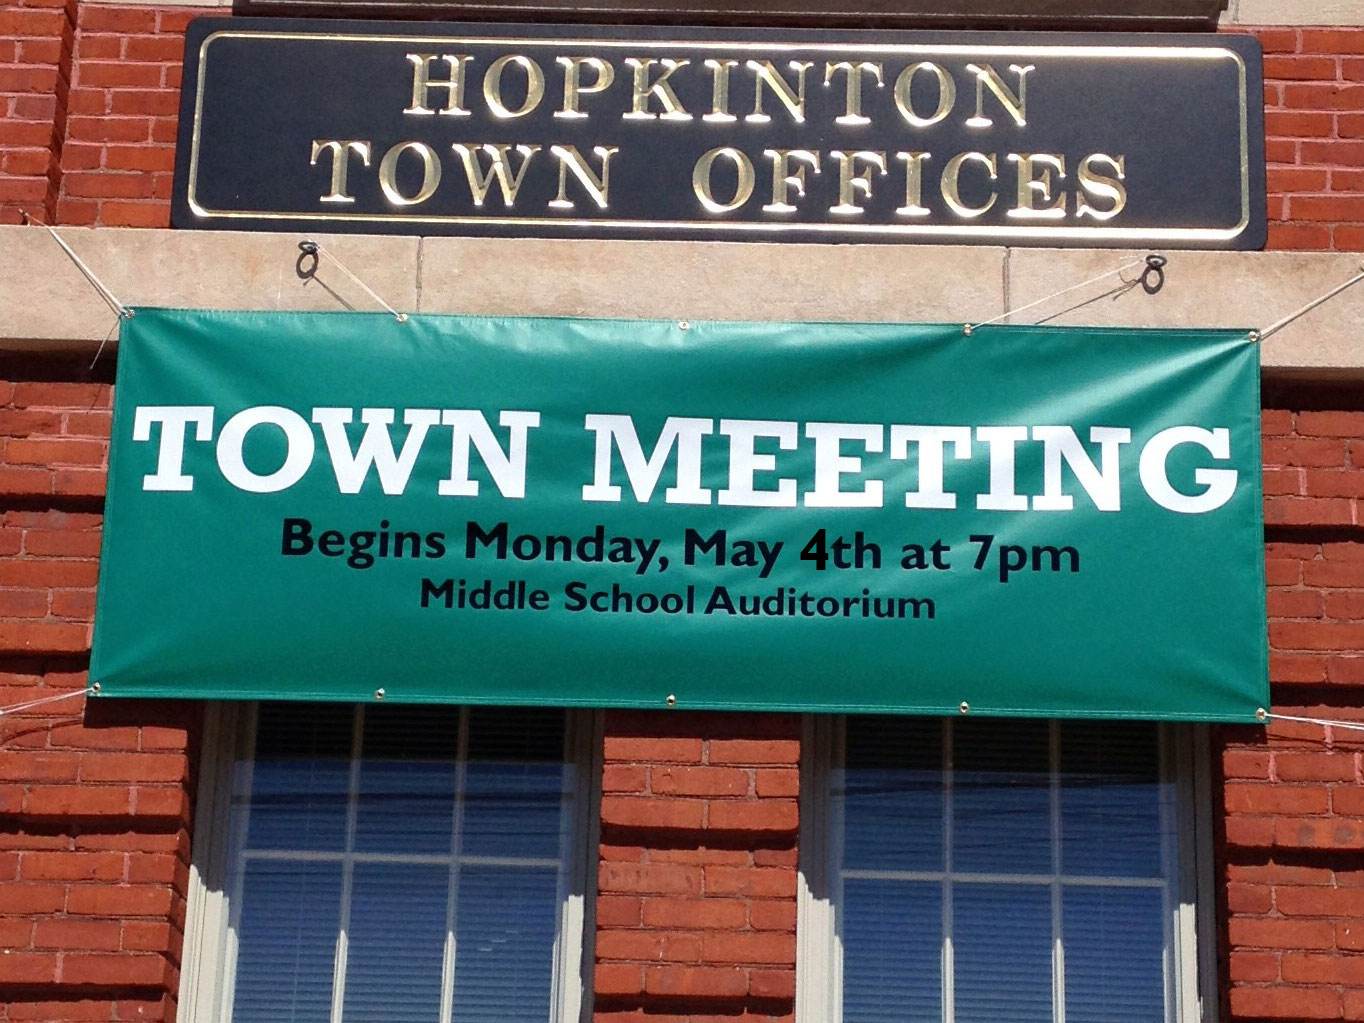 Town Meeting Begins Tonight at 7:00pm